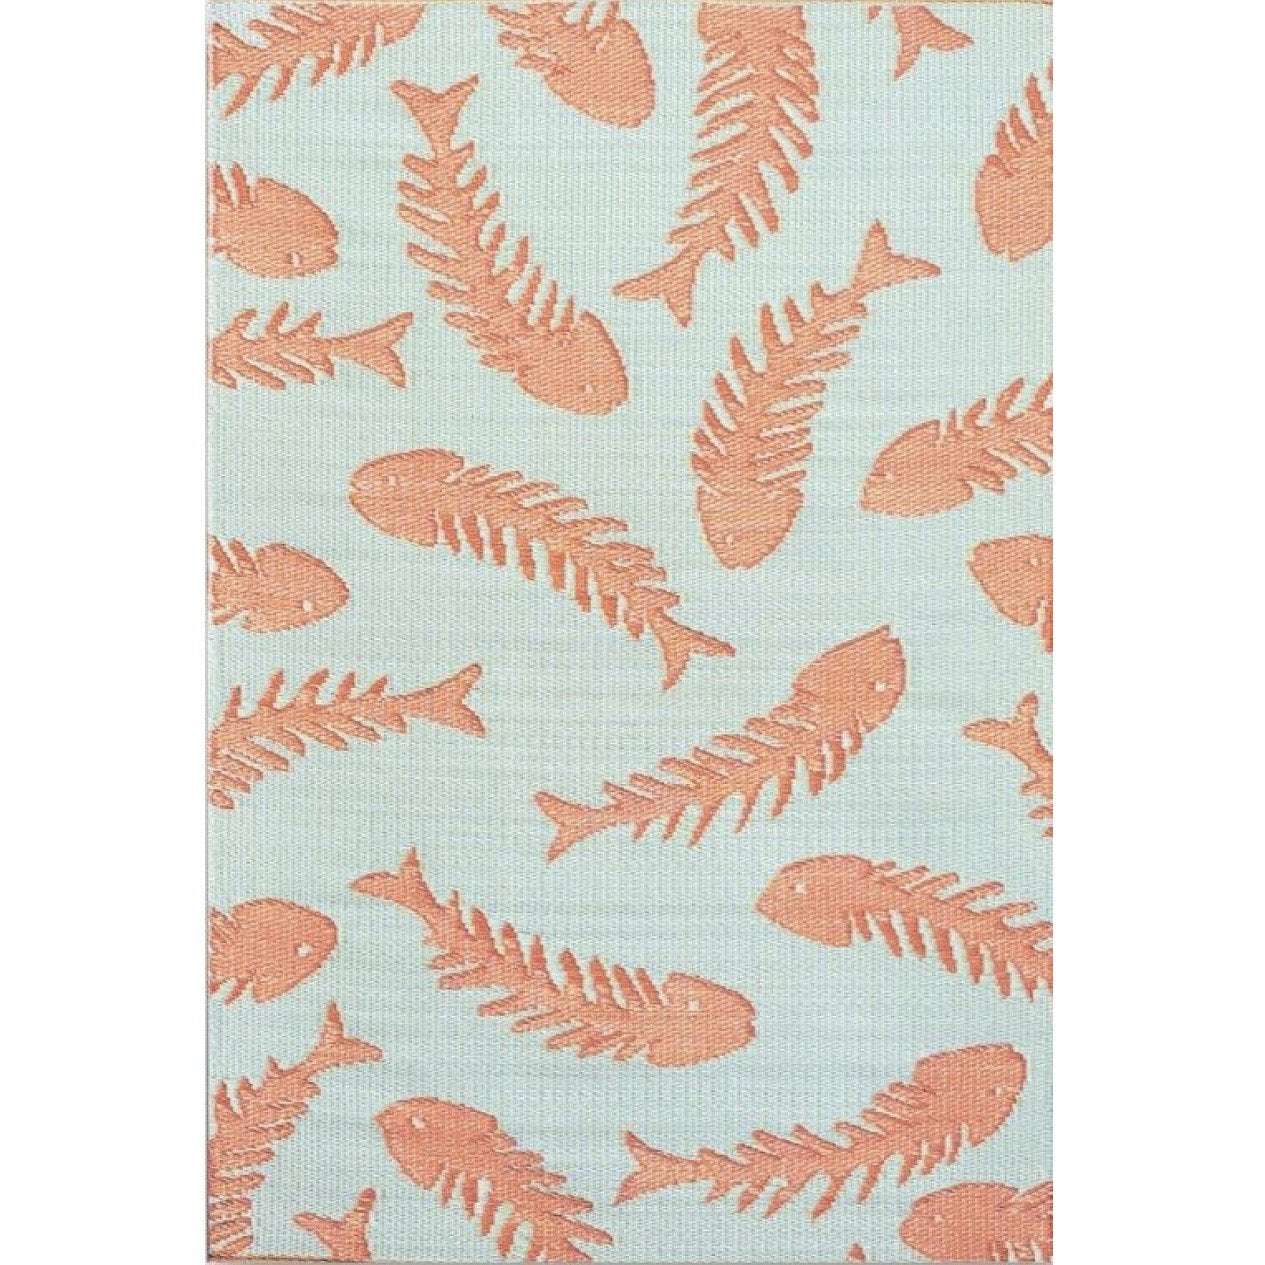 Mad Mats Salmon Outdoor Carpet Rug Aqua Salmon - Putti Fine Furnishings Canada